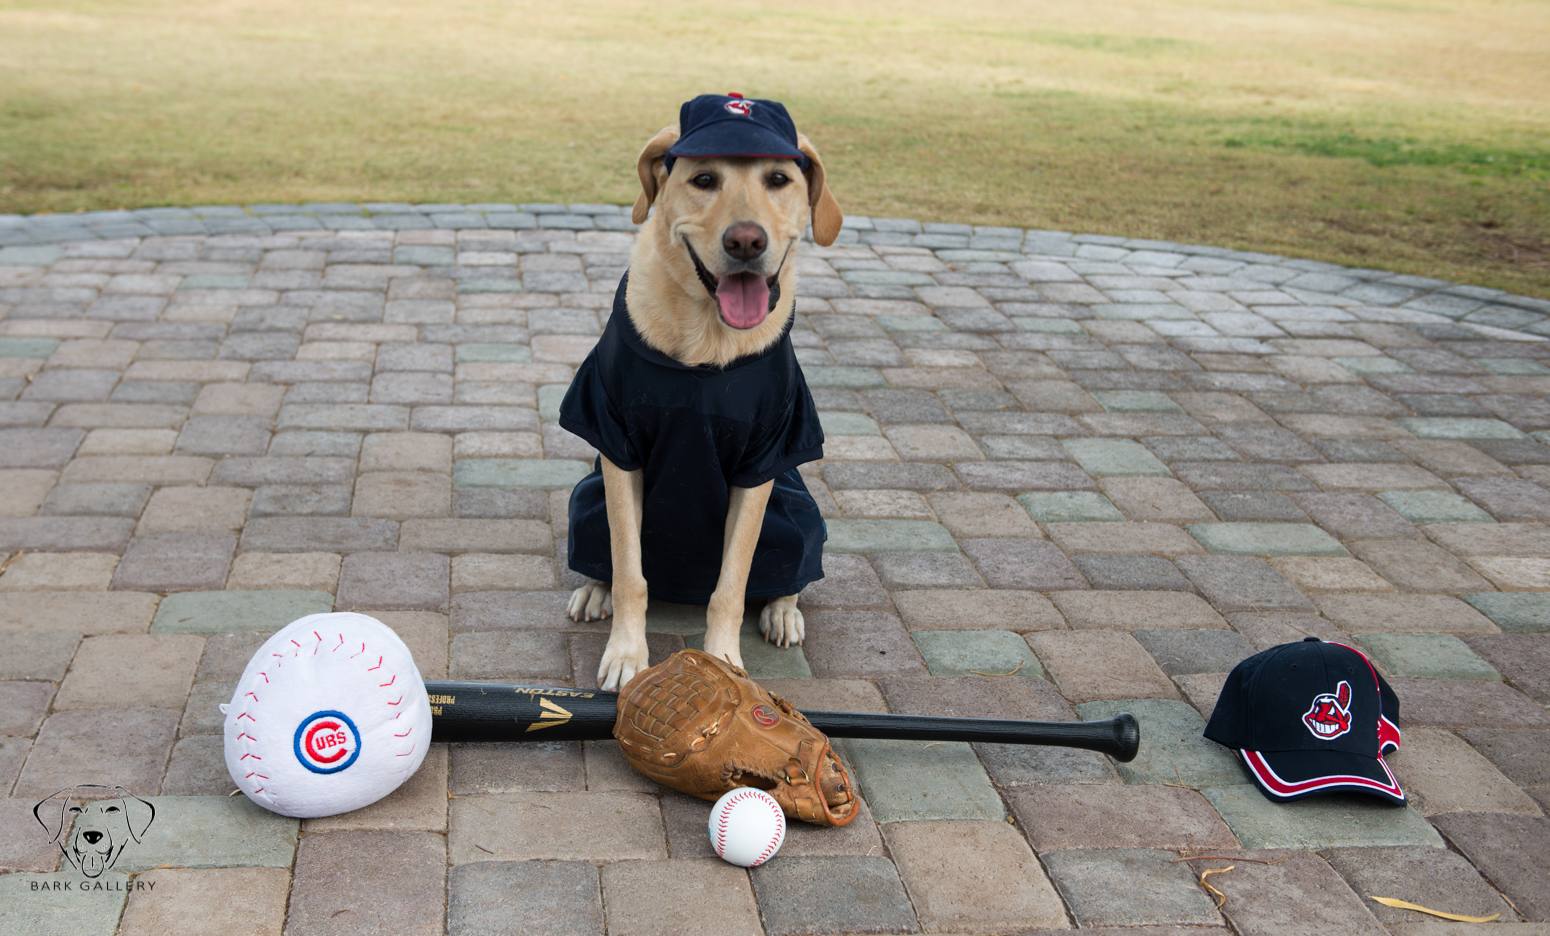 Benny poses for a photo with the Chicago Cubs and Cleveland Indians props.